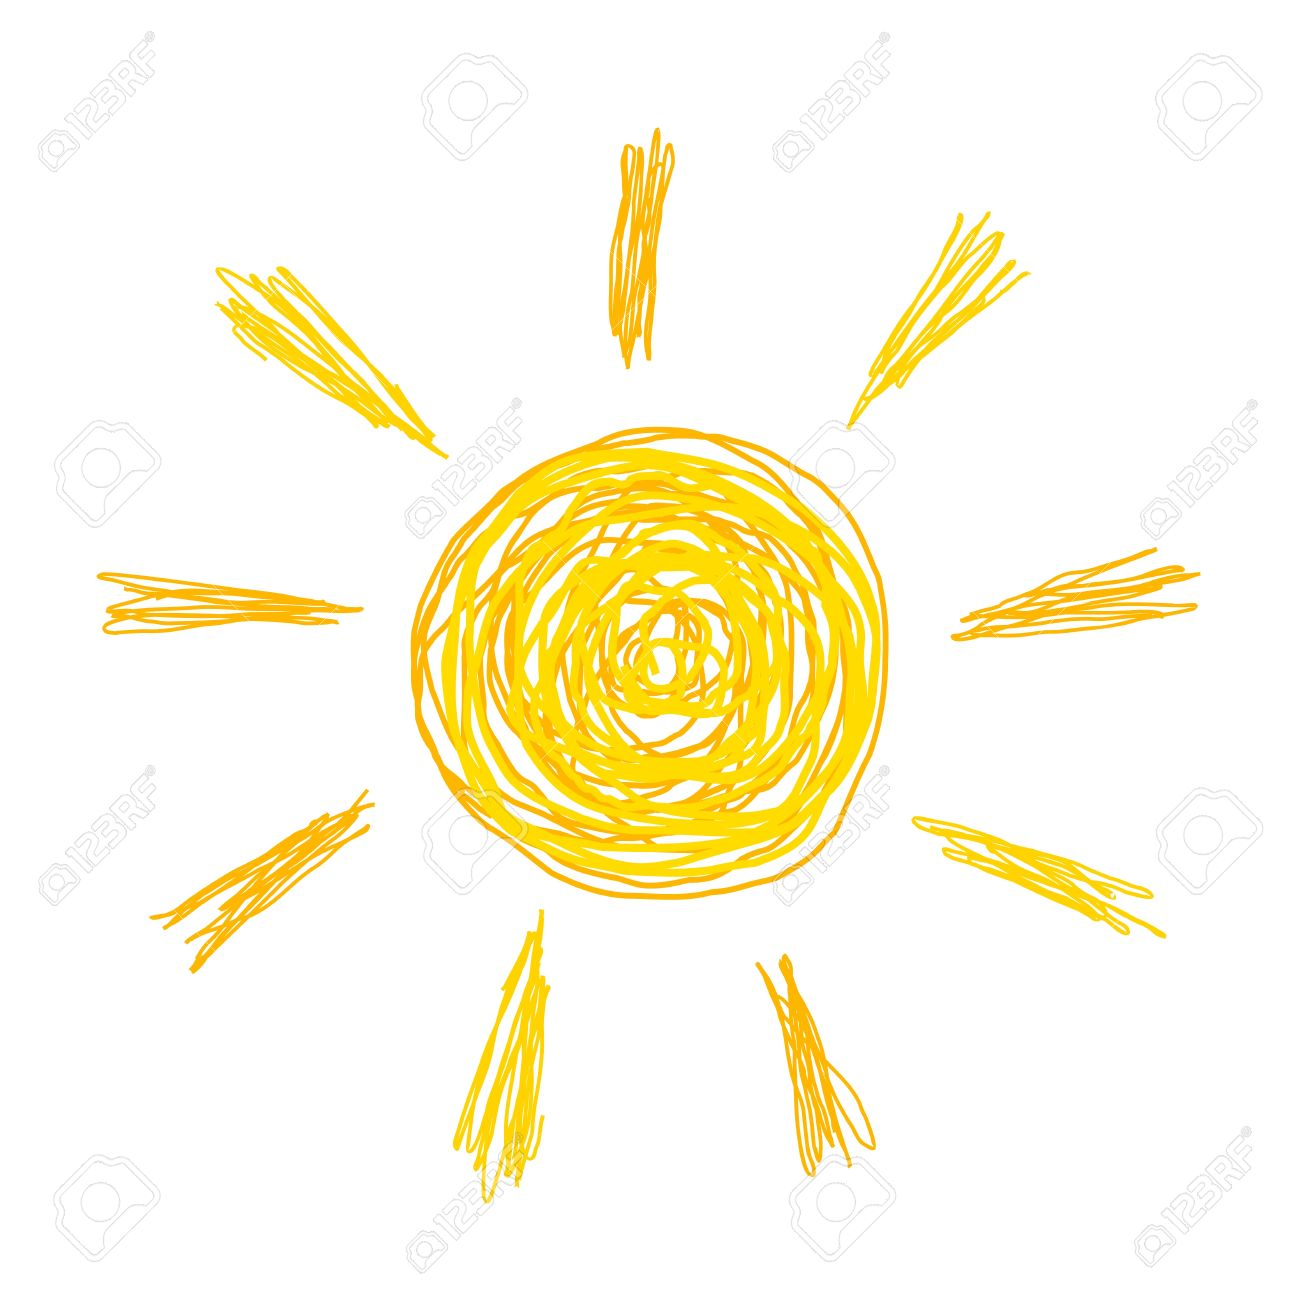 Uncategorized Sun Drawing doodle sun drawing vector illustration royalty free cliparts stock 21137385